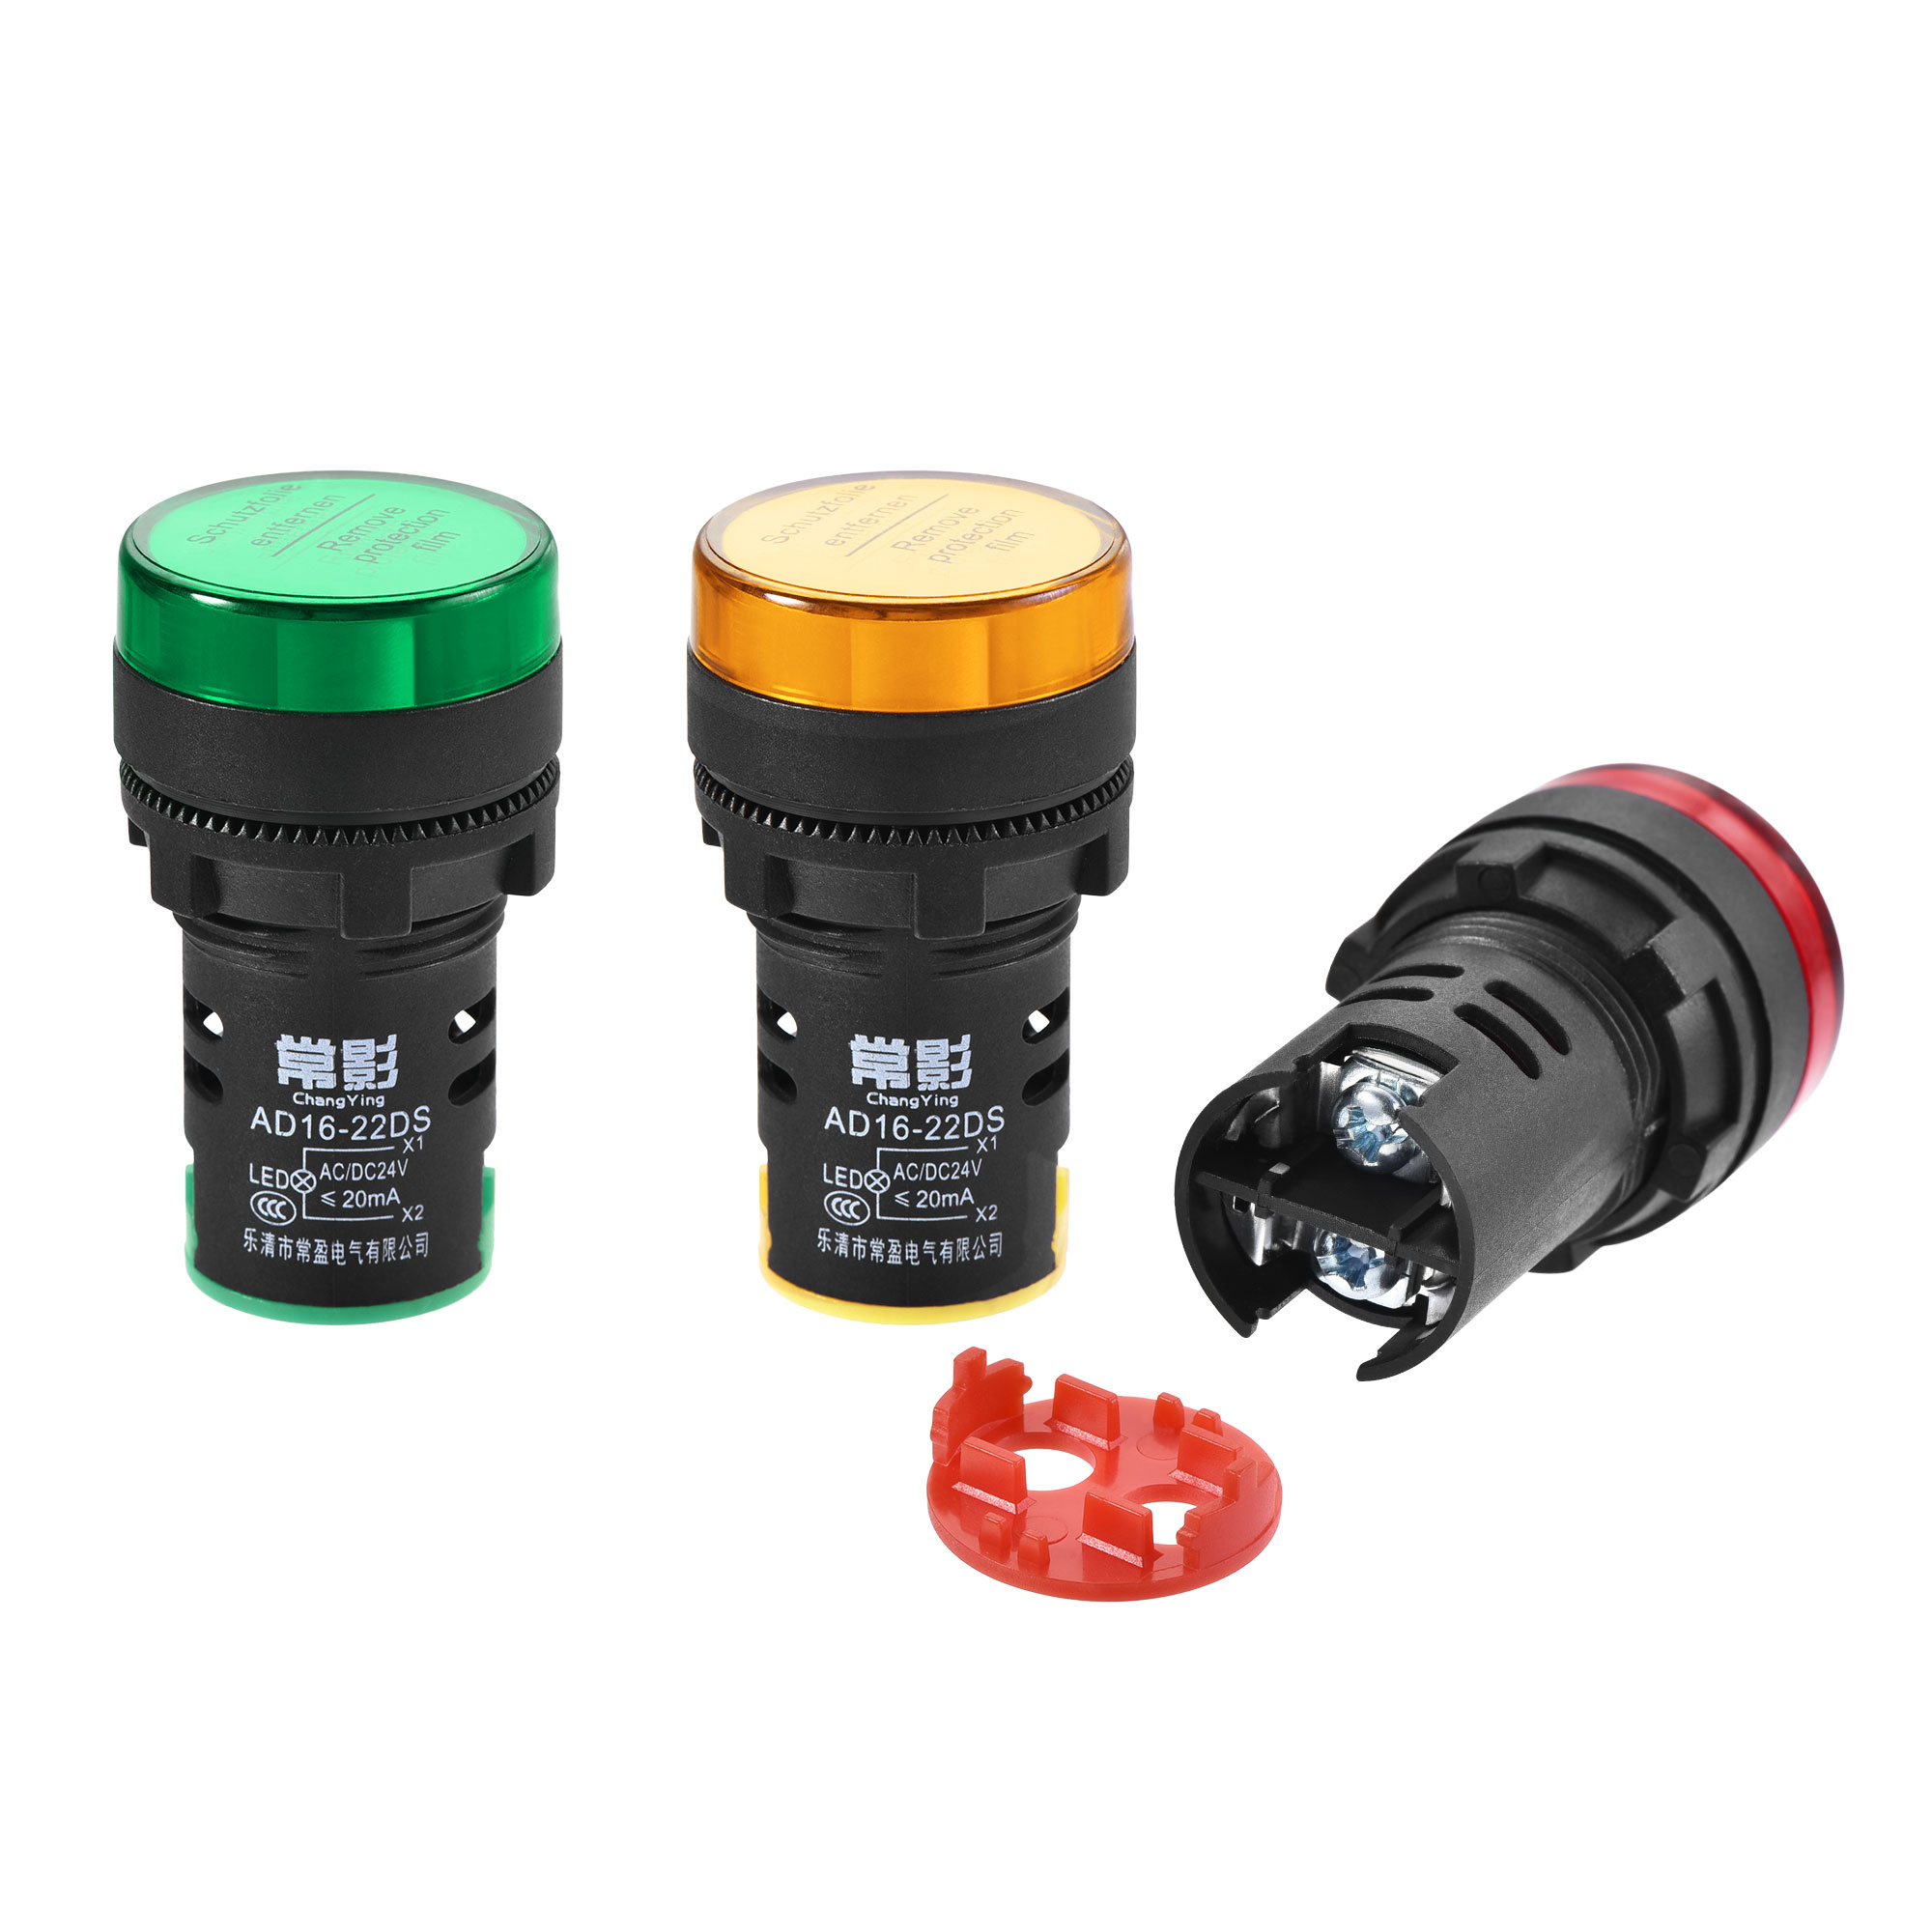 AC/DC 24V Indicator Lights, Dust Cover IP54, Red Green Yellow - 3 Colors, 3Pcs